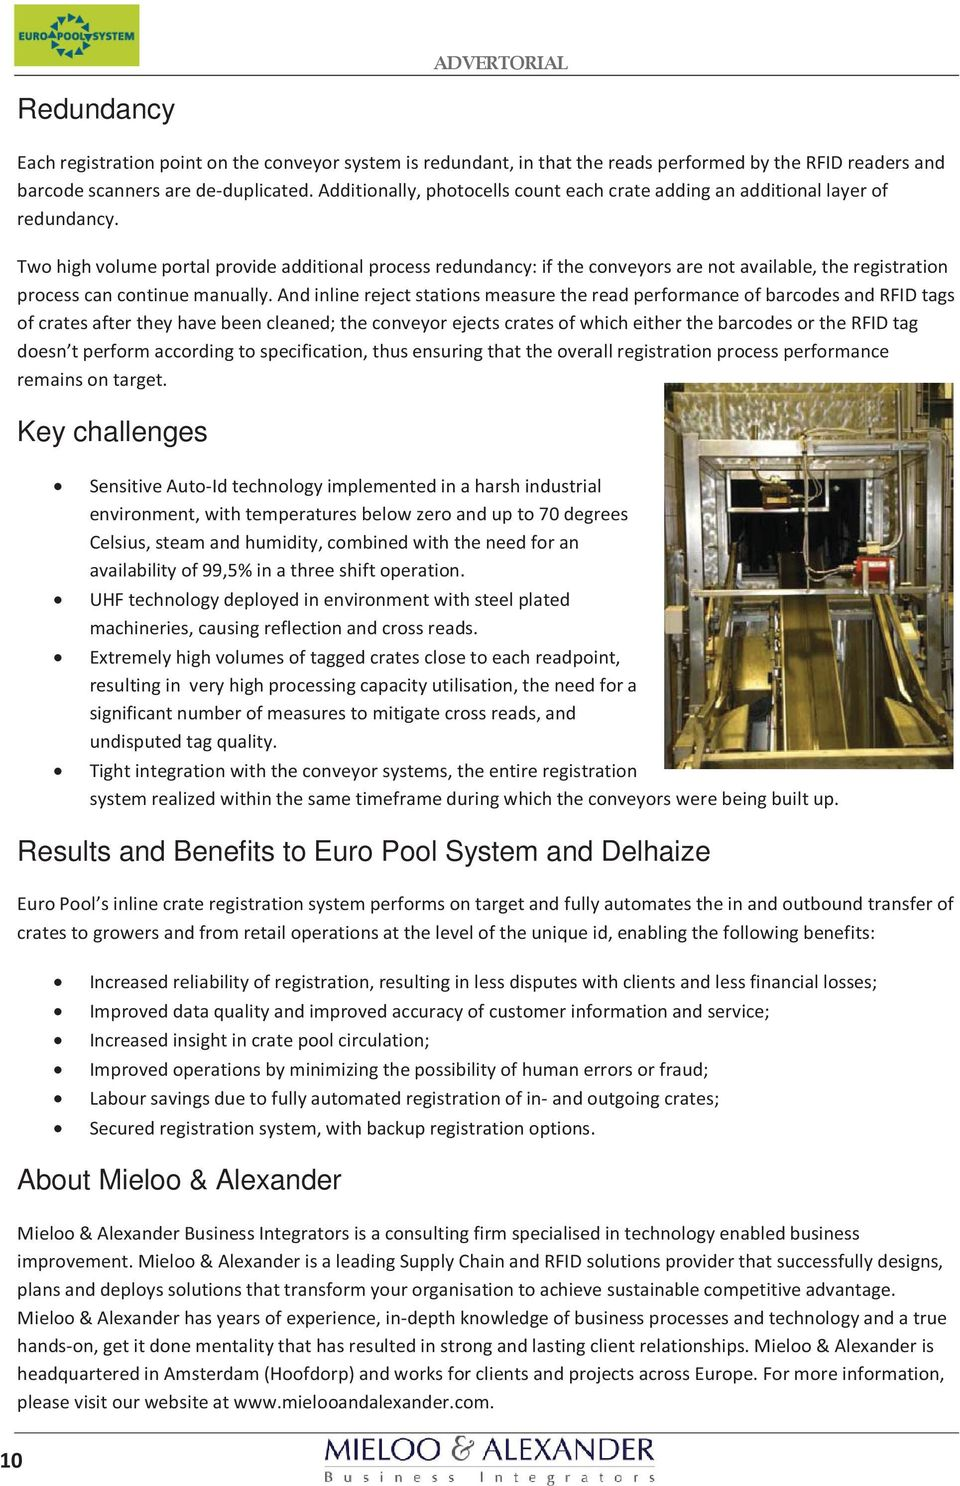 Benefits to Euro Pool System